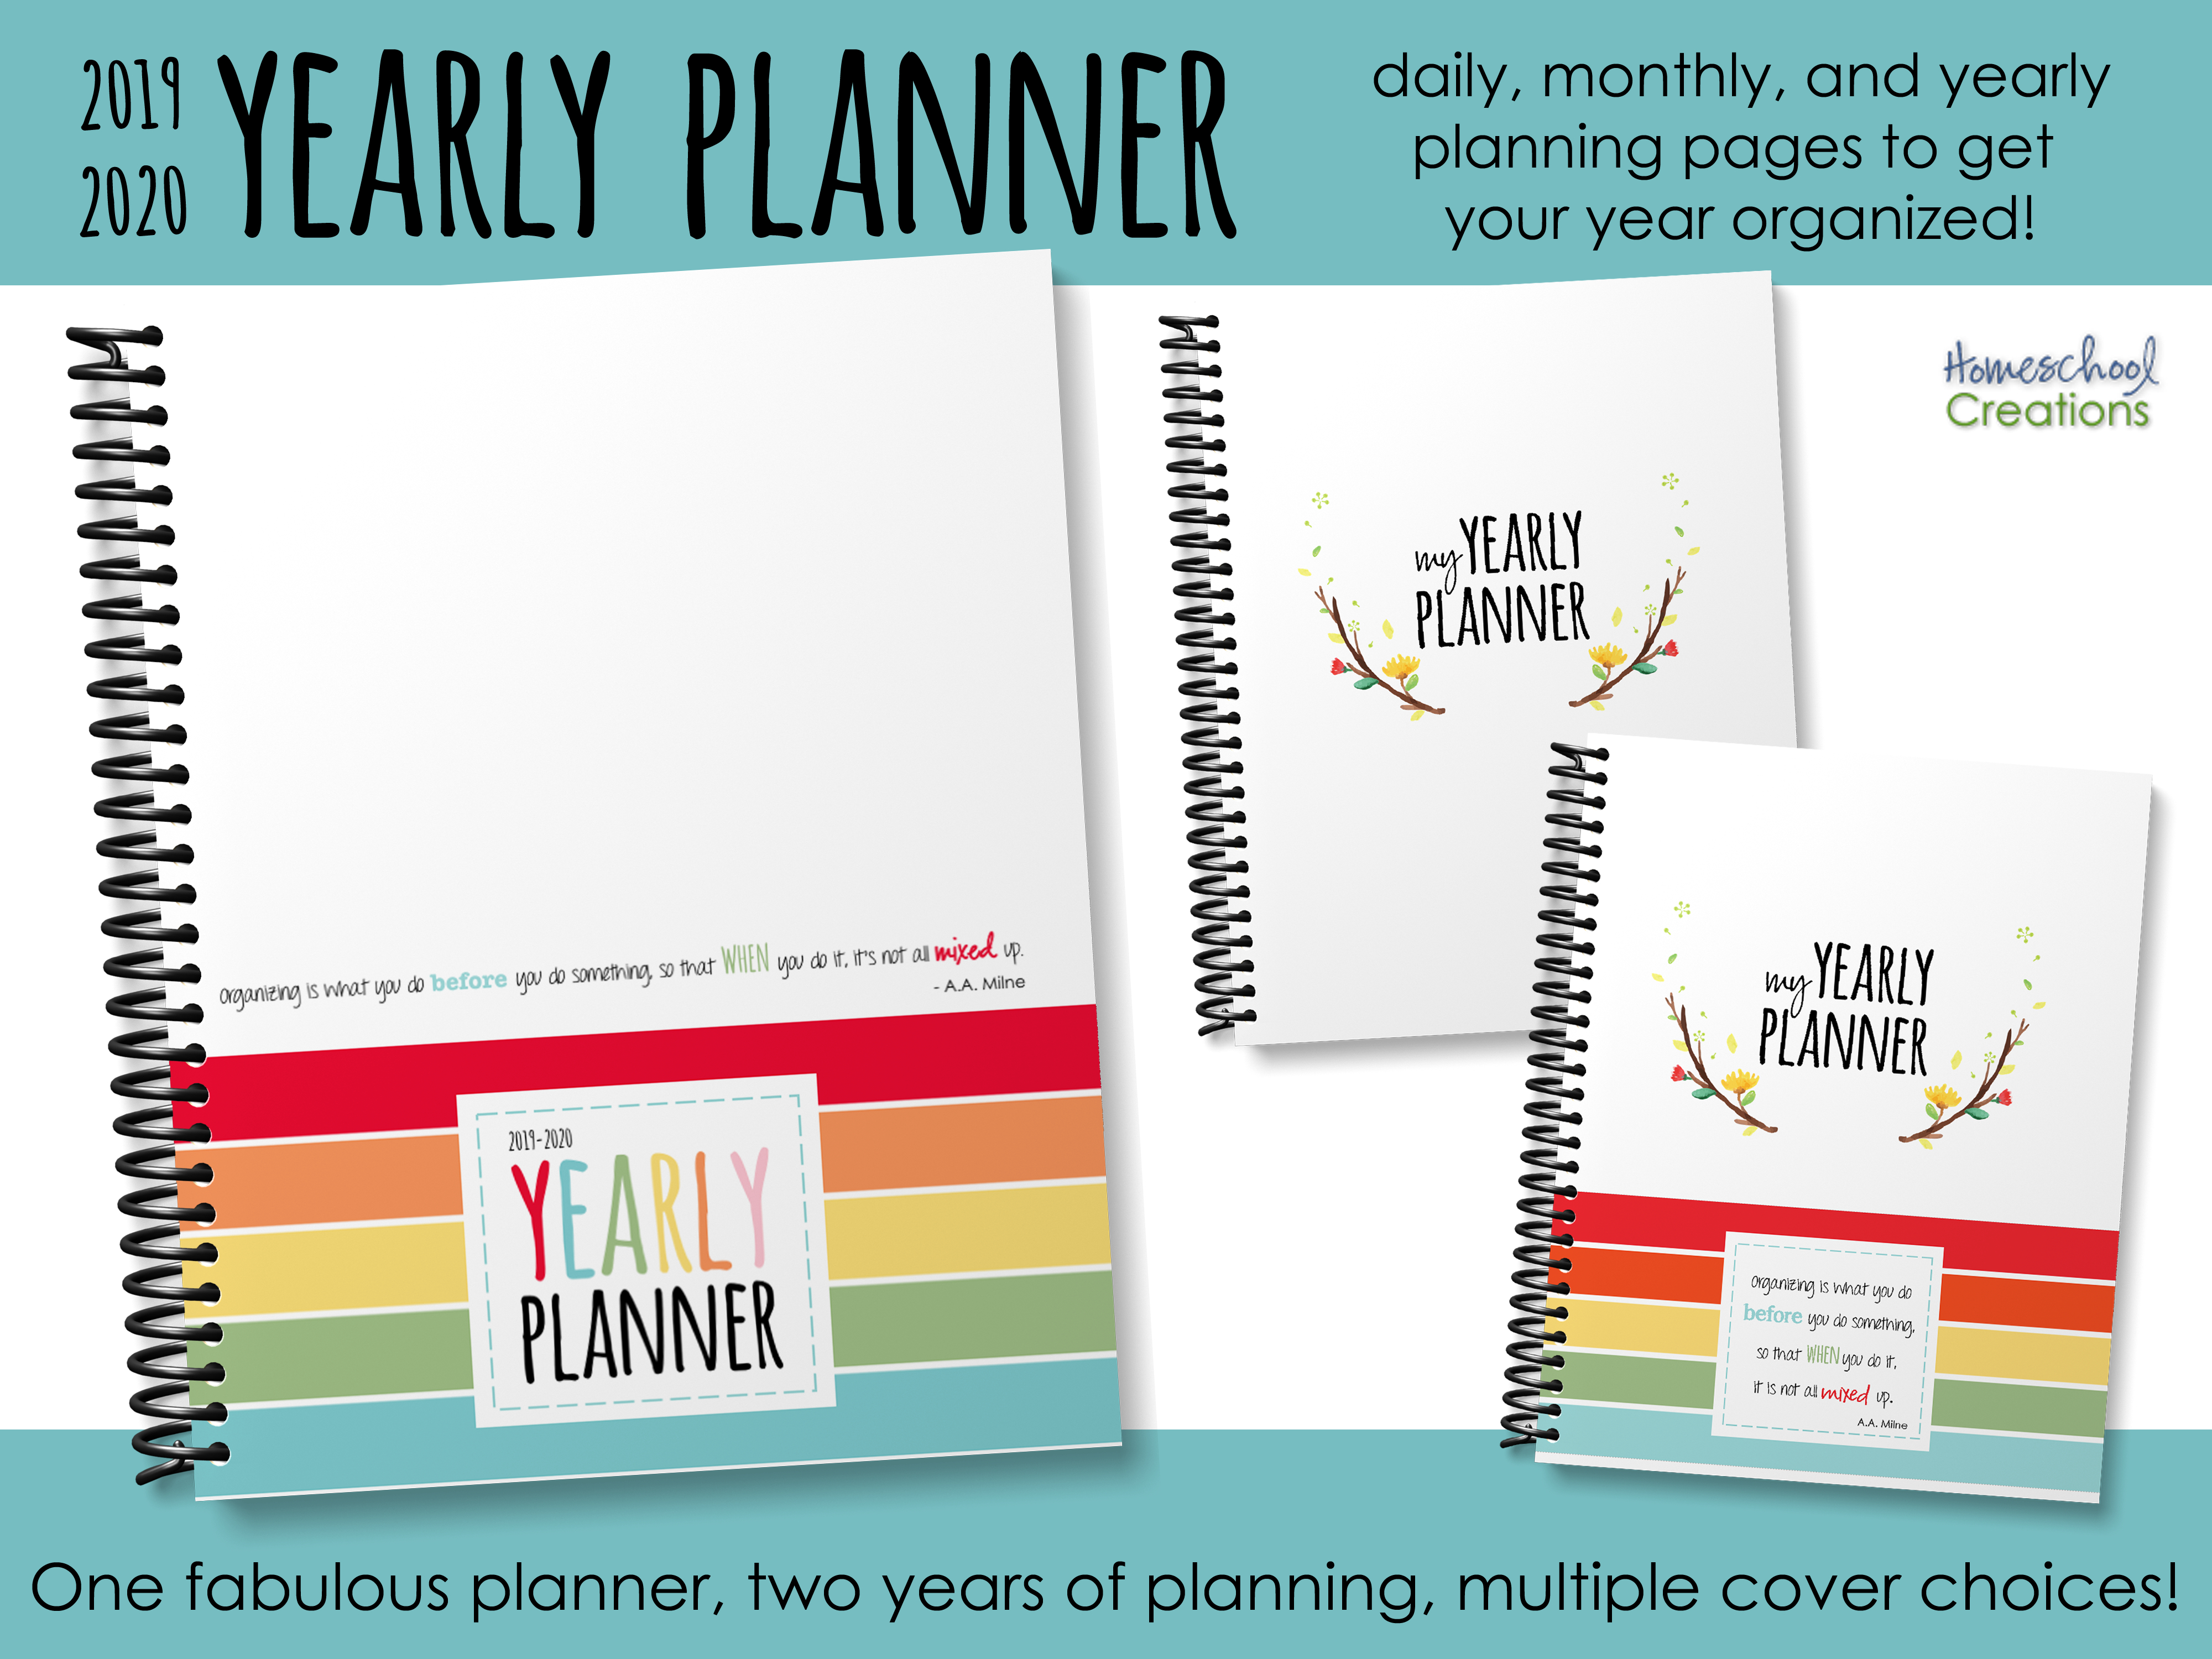 Yearly Planner - Organize Your Days for Homeschool Year At A Glance 2019-2020 Botanical Calendar Printable Free